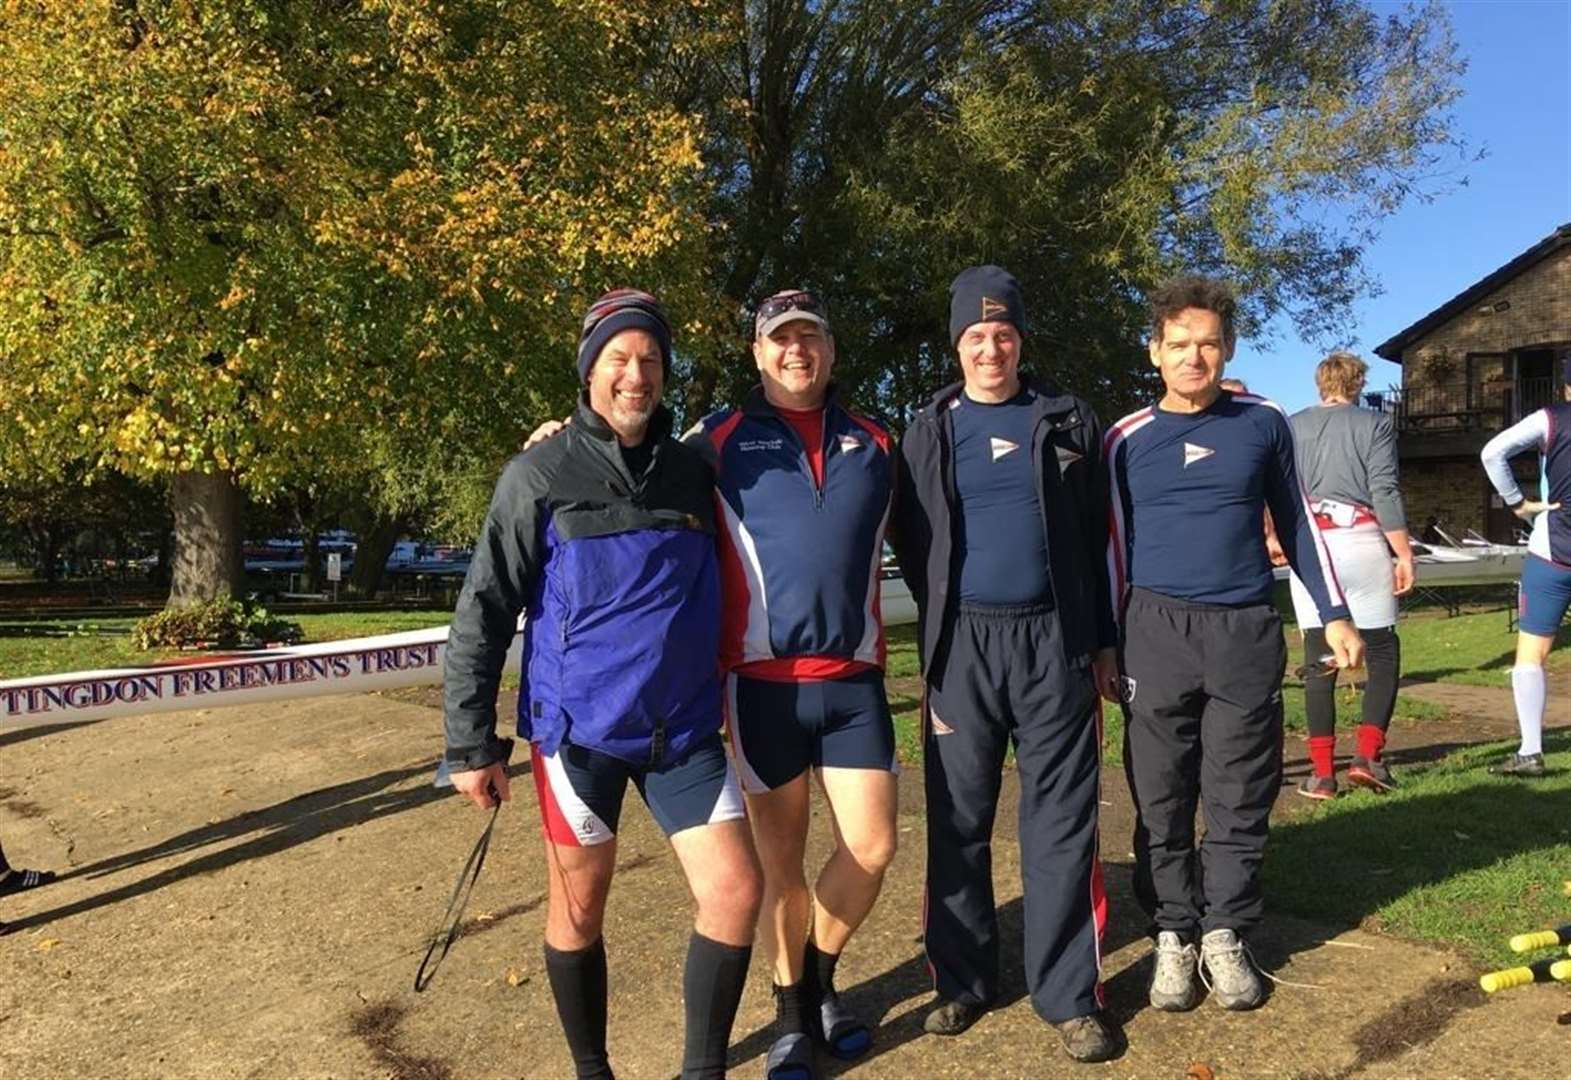 Fast start sees West Norfolk rowers bag second spot in category